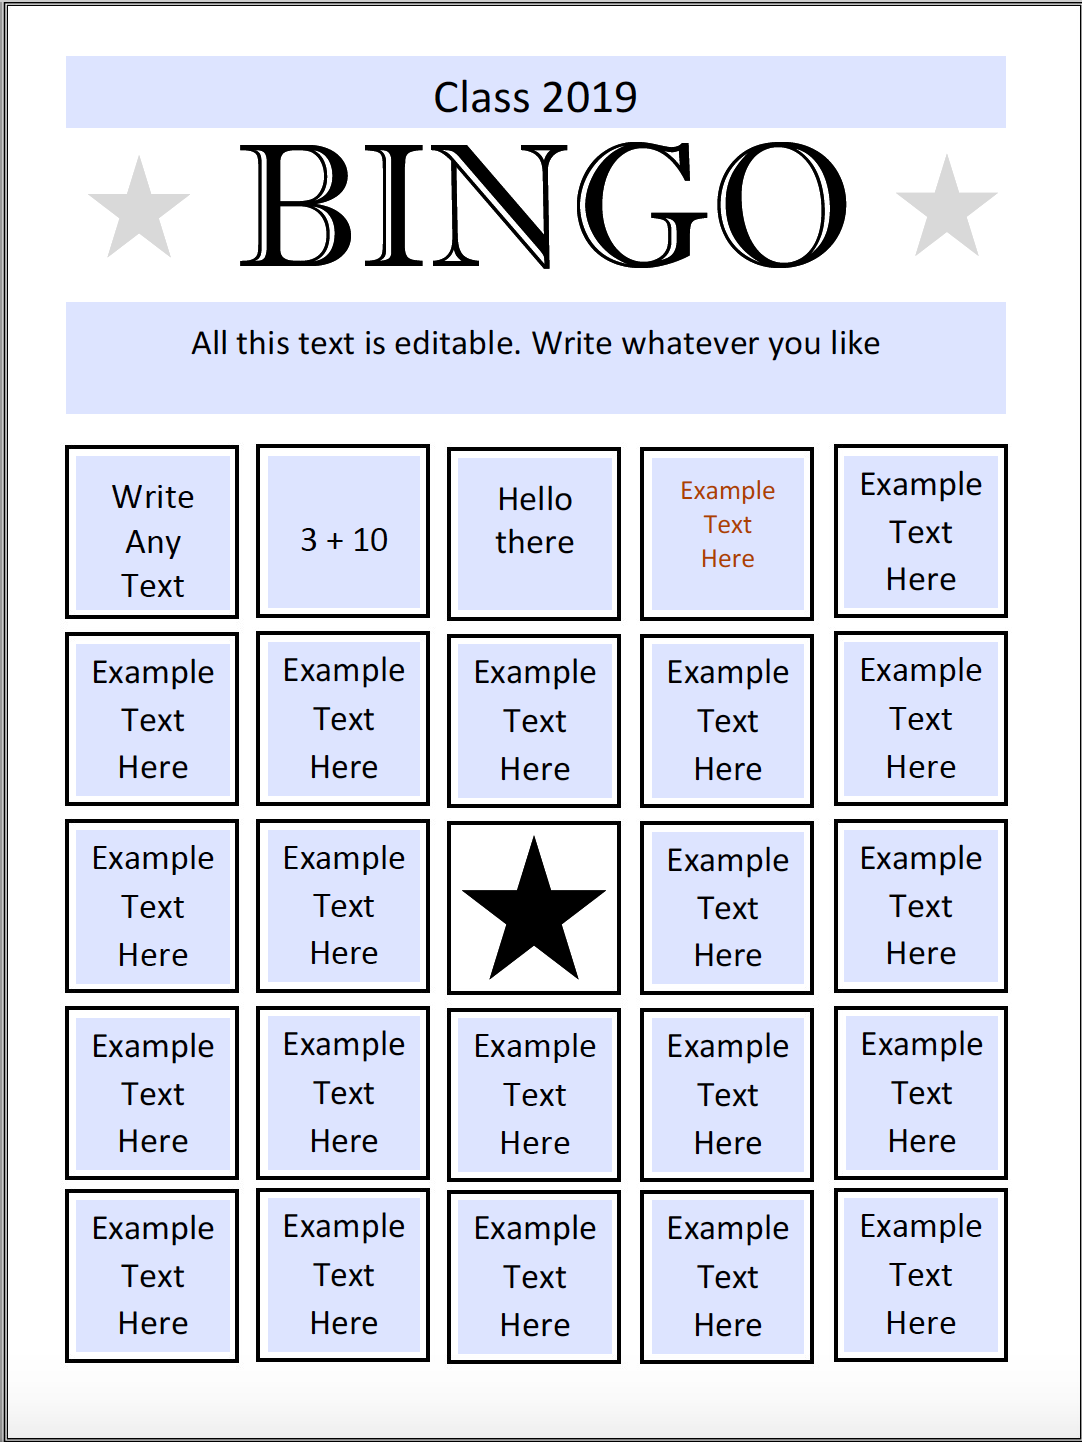 Bingo Preview with filled in answers